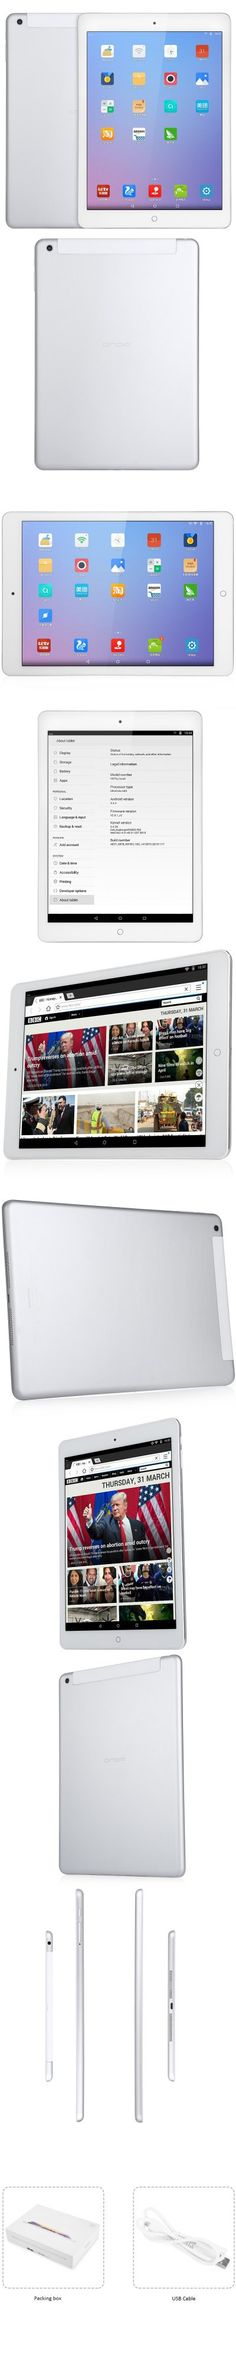 Onda V975S Android 4.4 Tablet PC